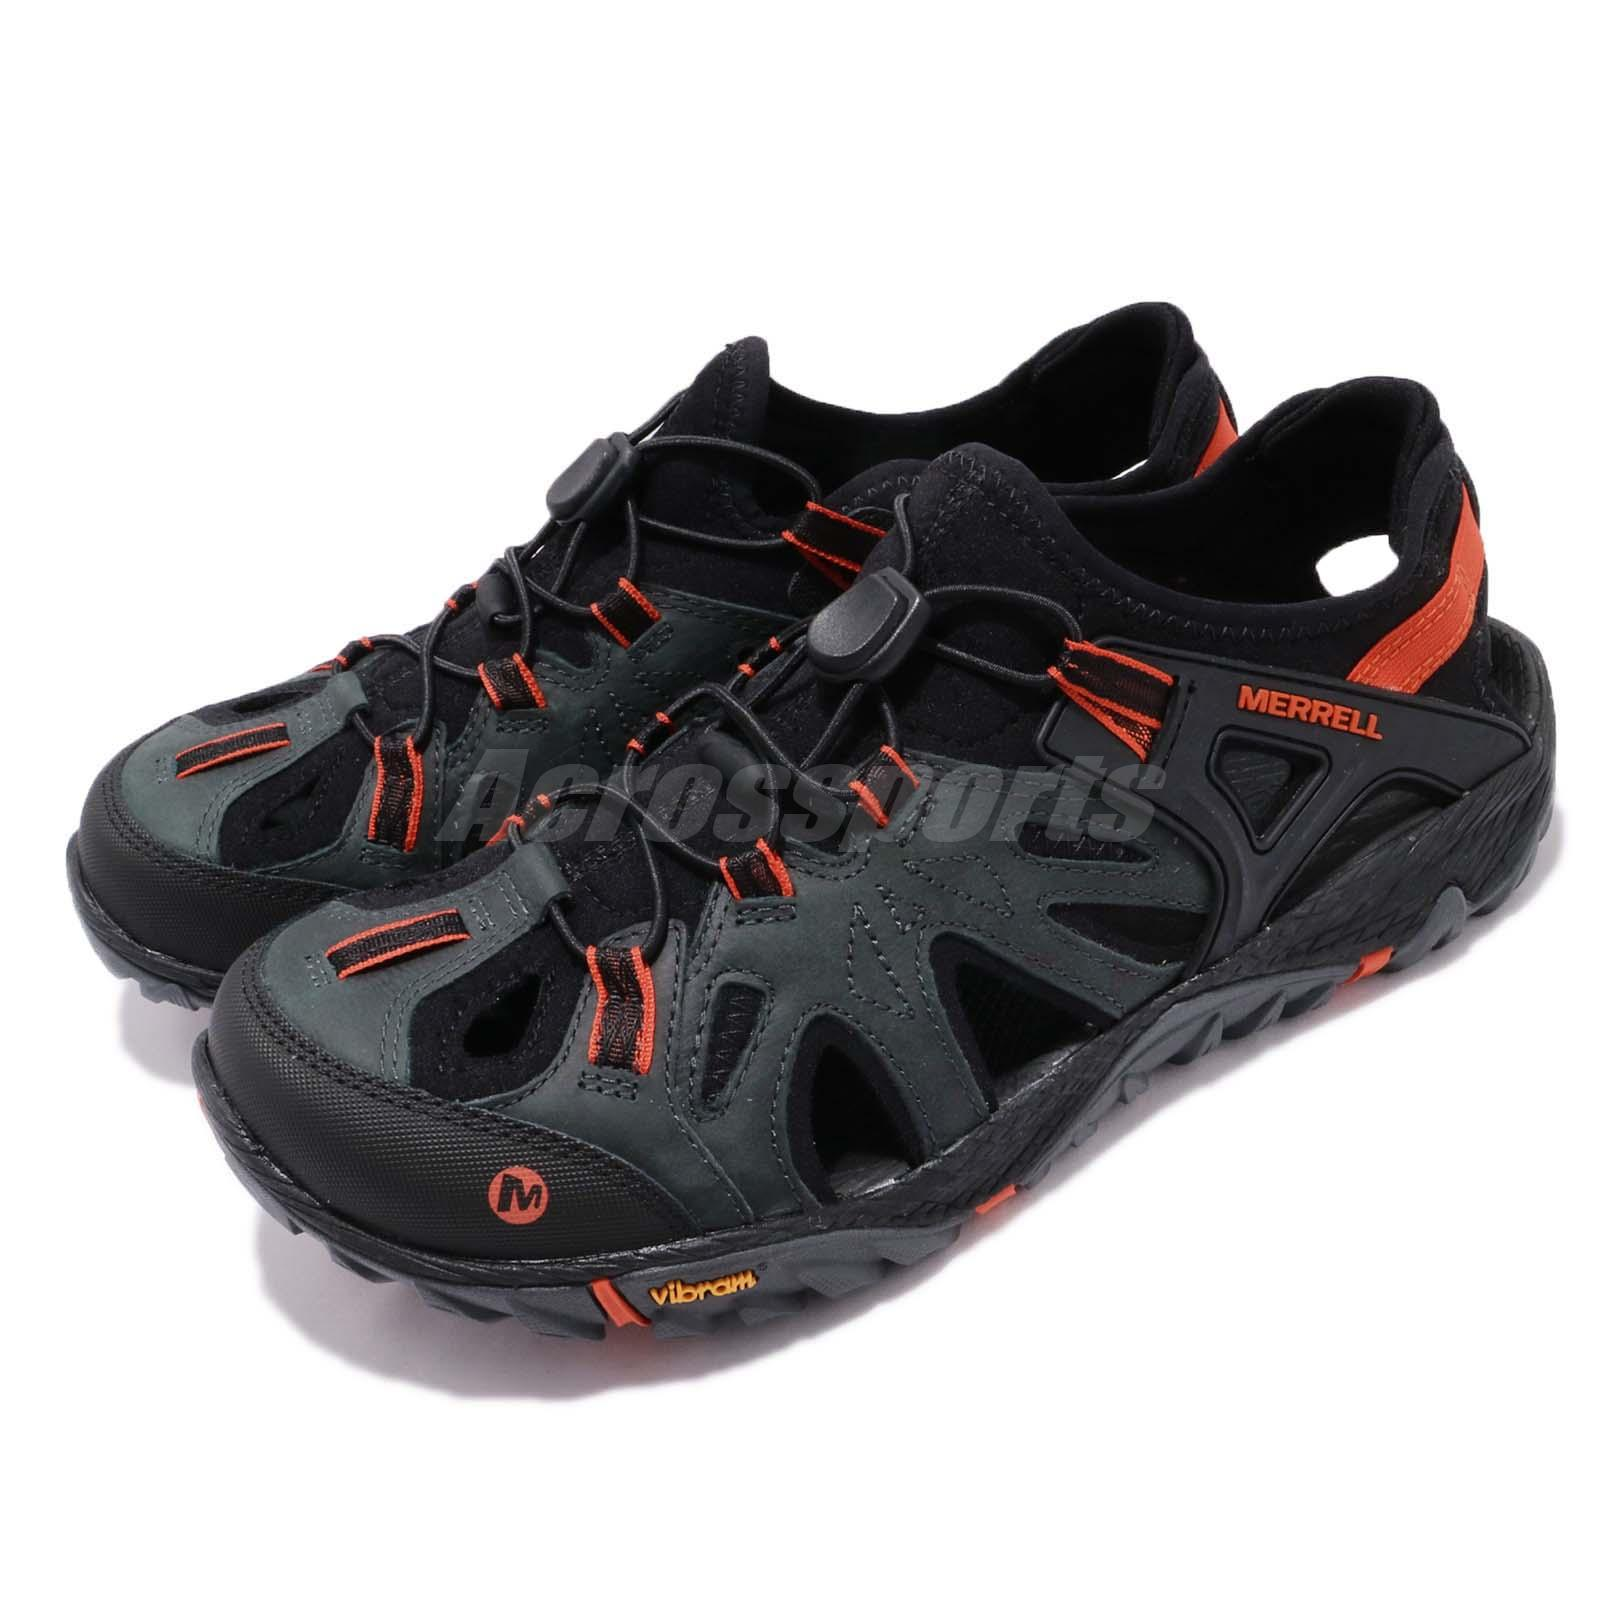 0d504def90d Details about Merrell All Out Blaze Sieve Vibram Black Men Outdoors Hiking  Shoes Sandal J12647